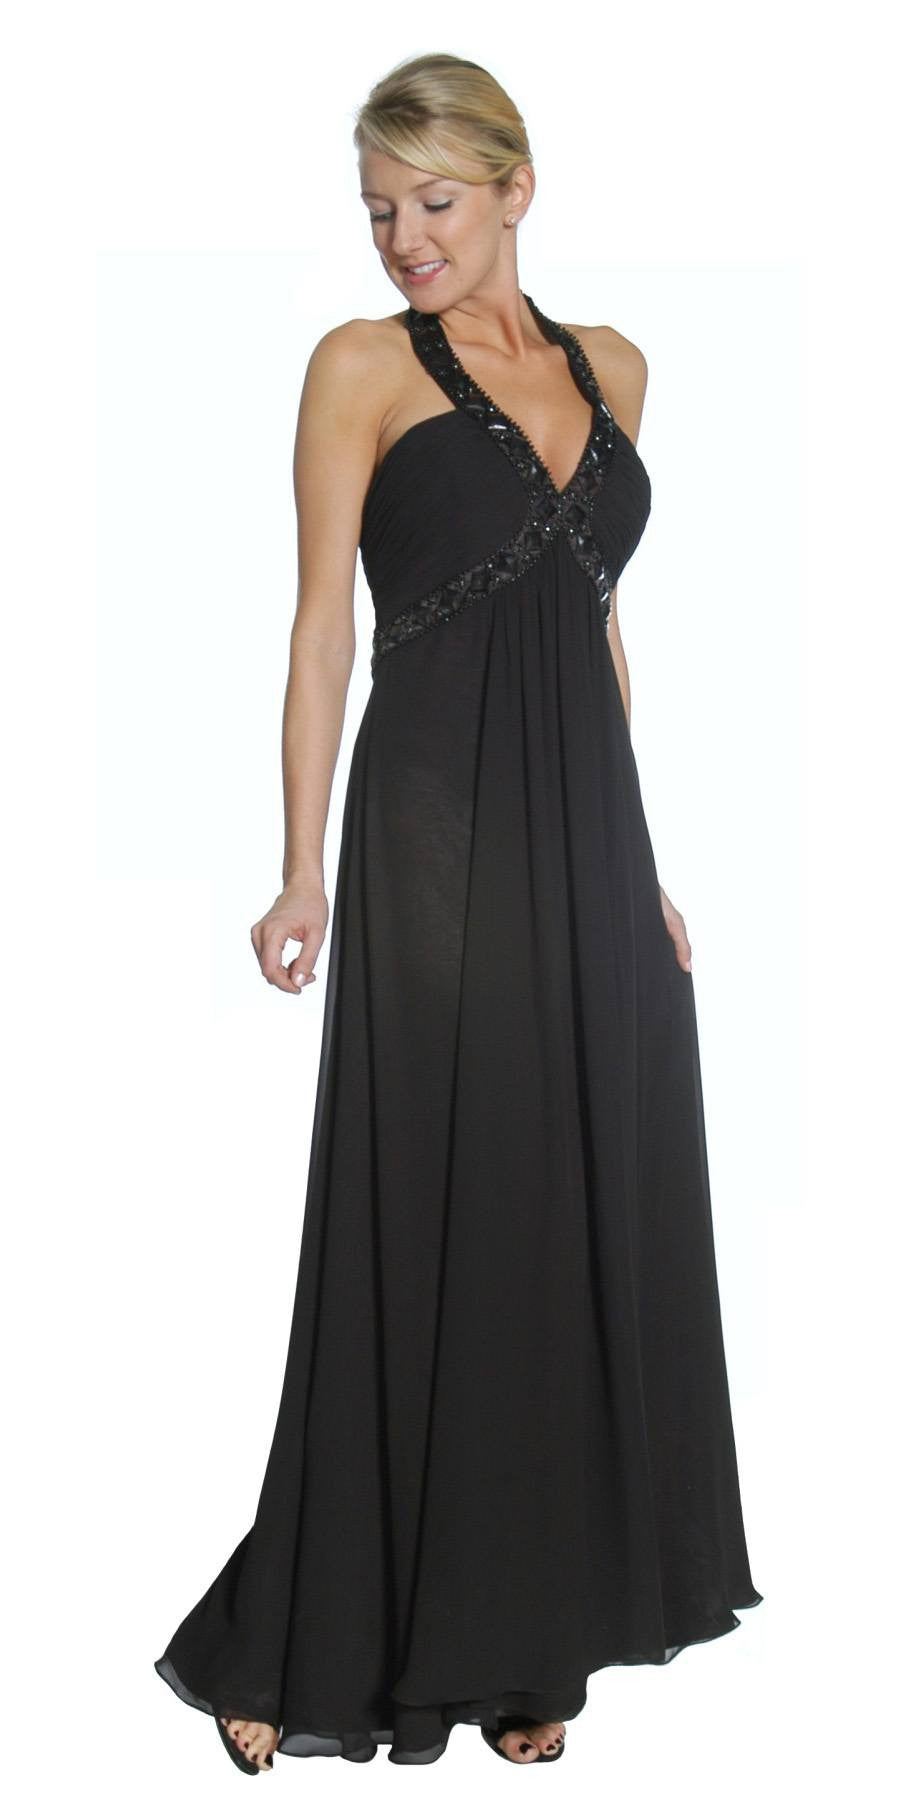 Black Empire Silhouette Formal Dress Jeweled V Neck Ruched Bodice